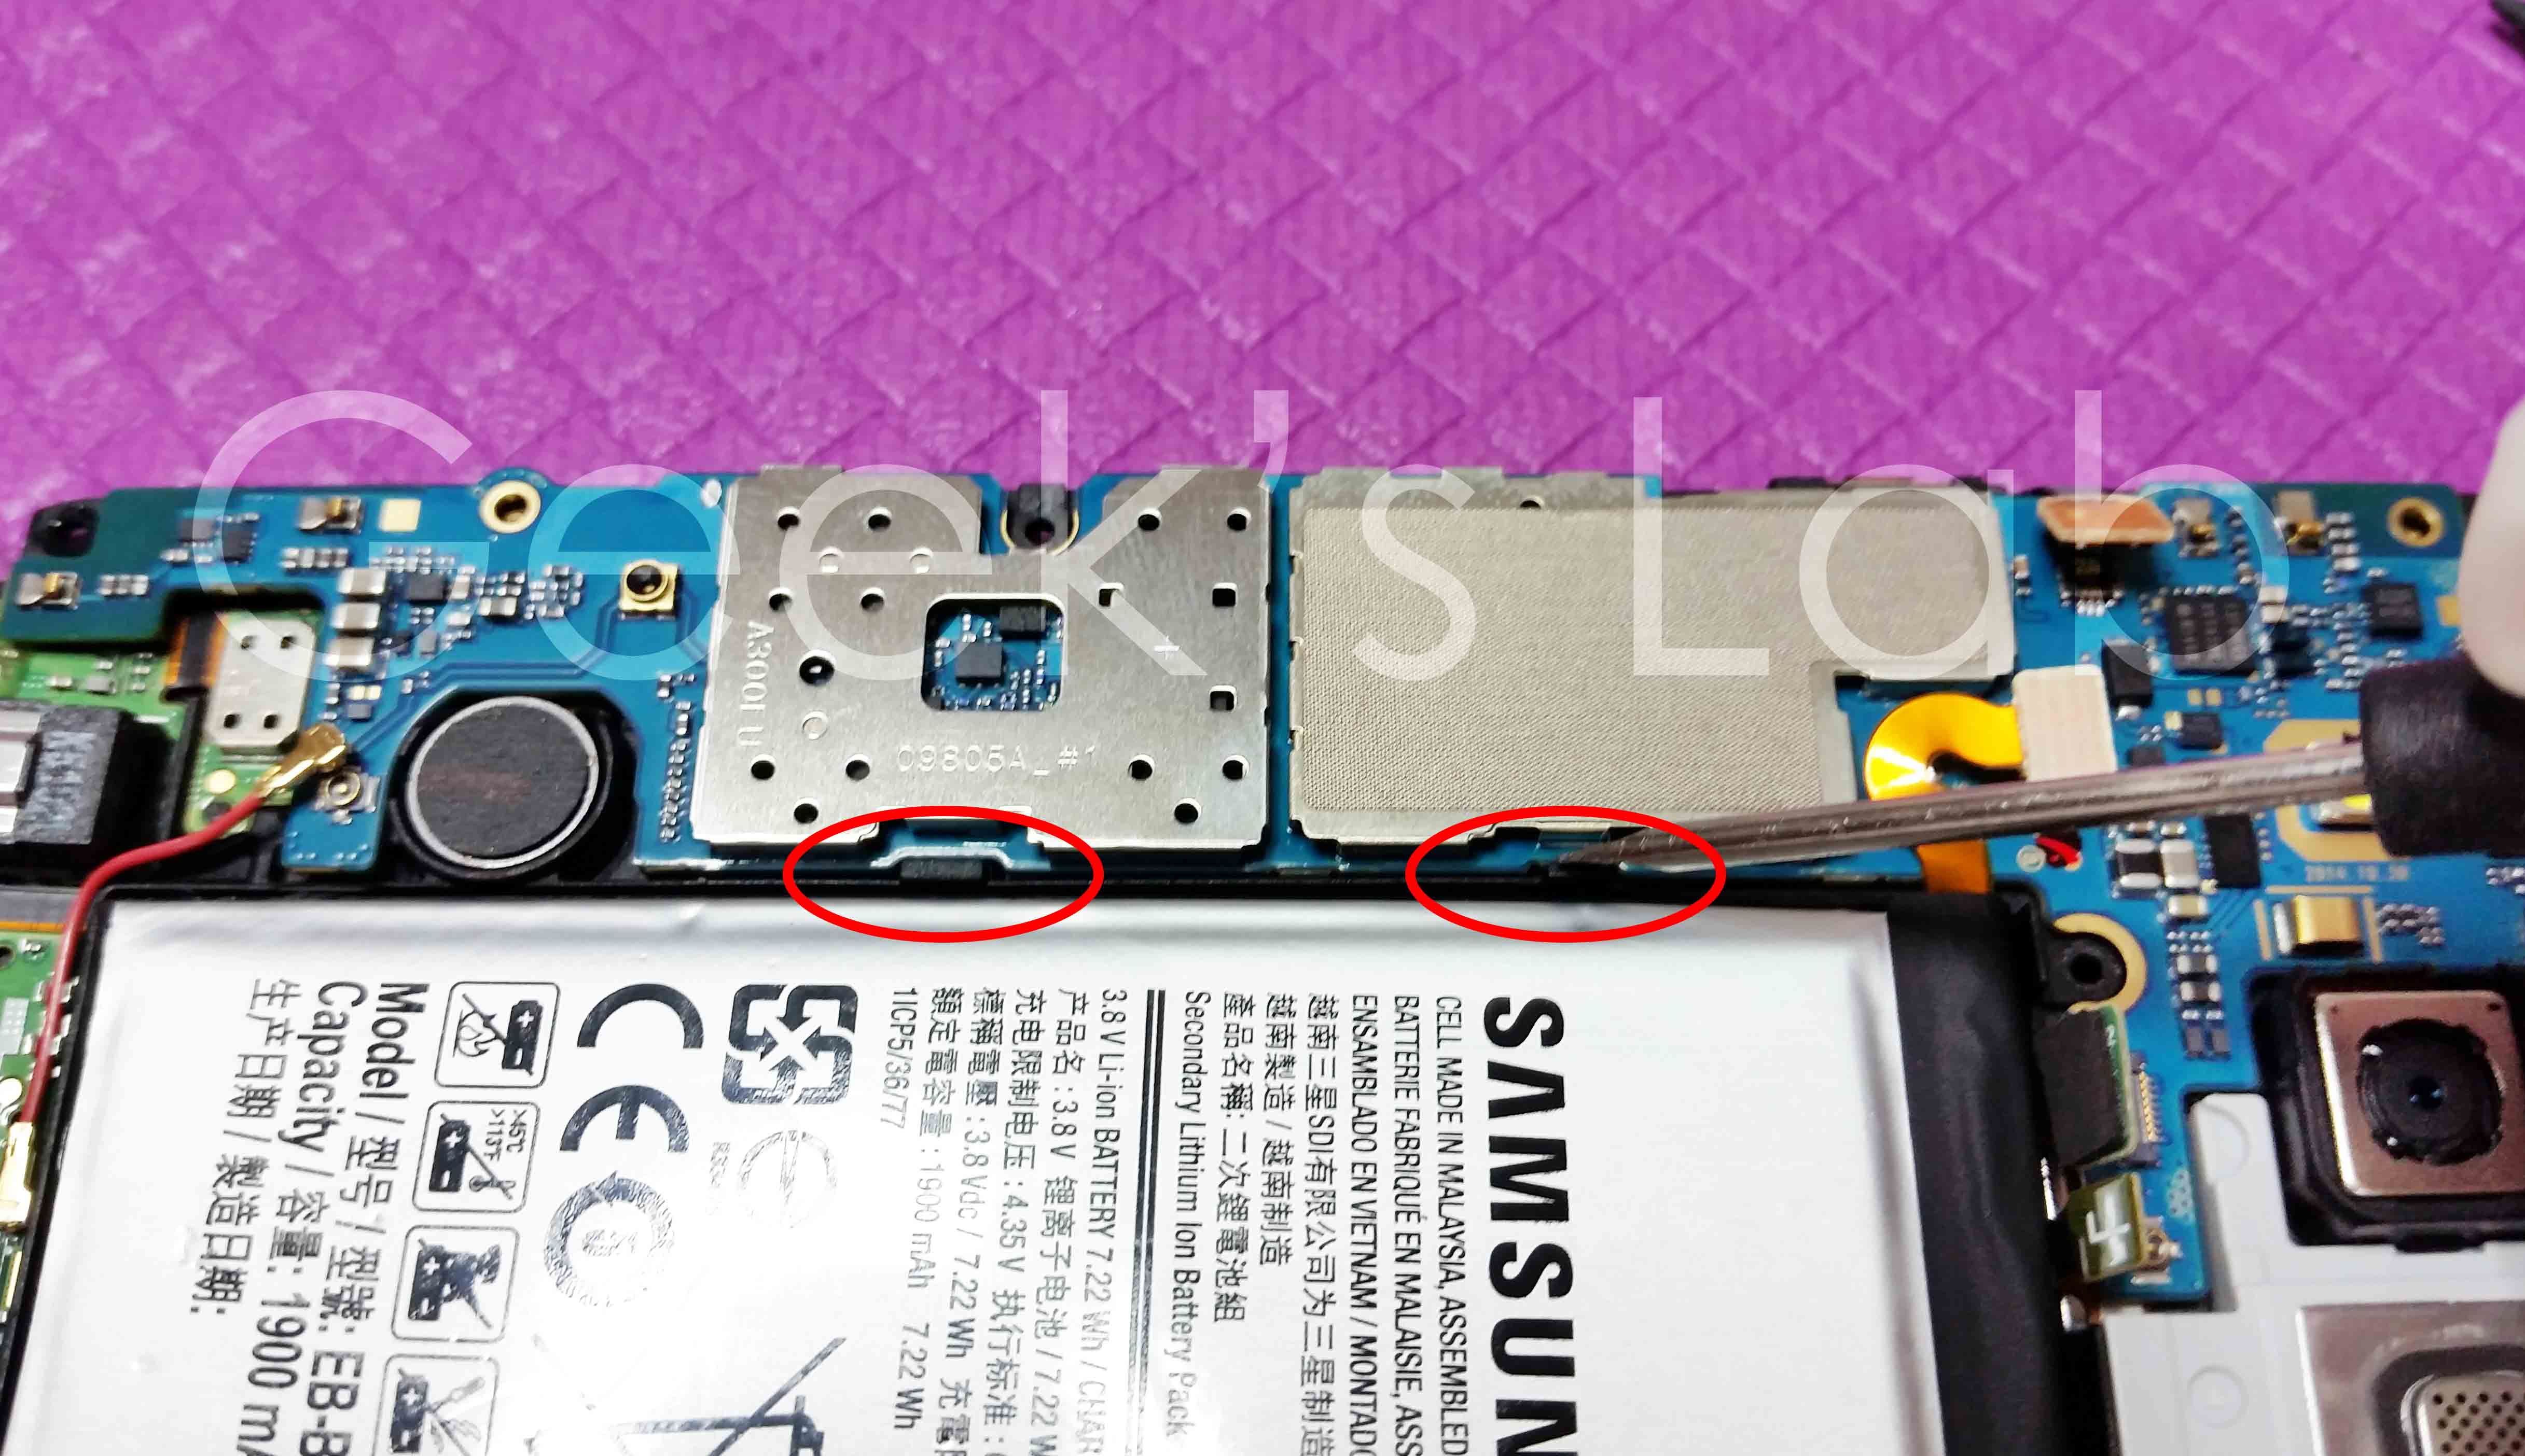 Juice Pack Galaxy S7 Edge moreover Samsung Galaxy S6 Battery Eb Bg920abe also Umx Mxc 540 Battery For Alltel also 111584617173 furthermore 51083. on samsung galaxy s battery replacement